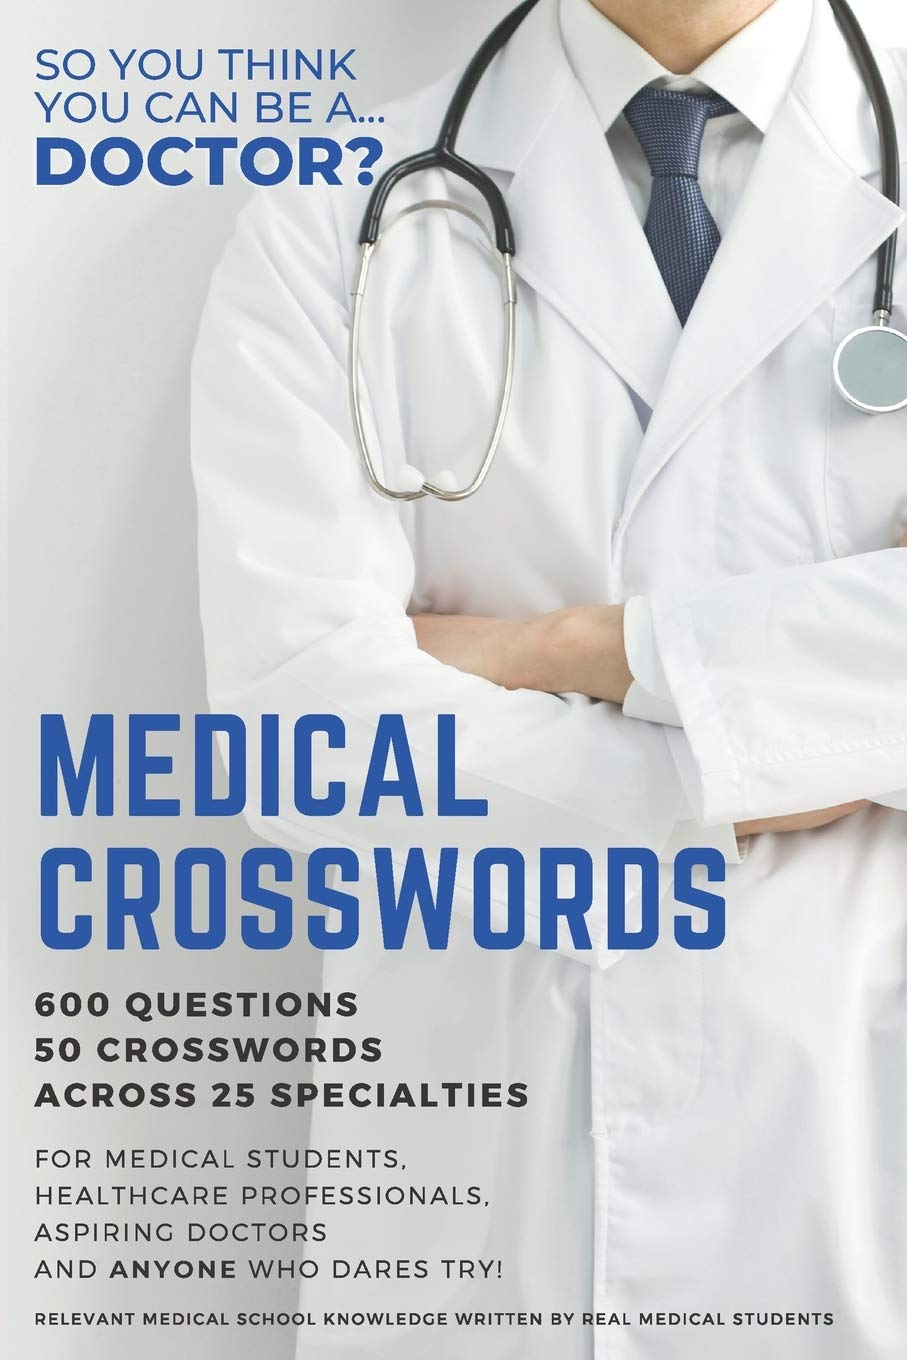 Medical Crosswords So You Think You Can Be A Doctor Perfect Gift For Aspiring Doctors Medical Students And People Who Like A Challenge Amazon Co Uk Pearson Dominic 9798571577489 Books